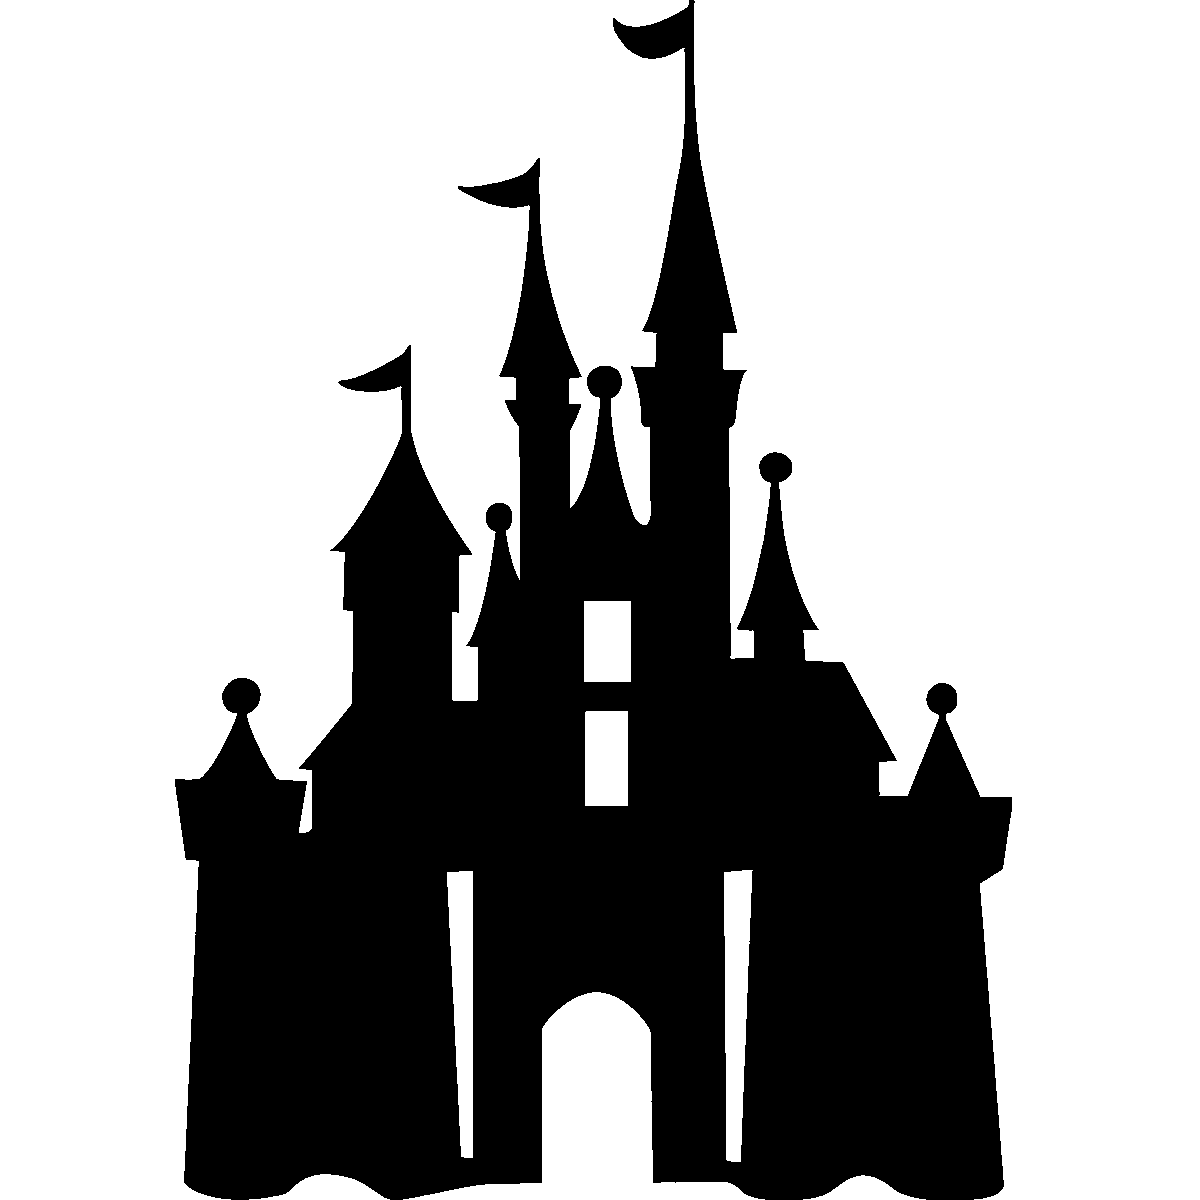 Disney Castle Silhouette Png Www Imgkid Com The Image